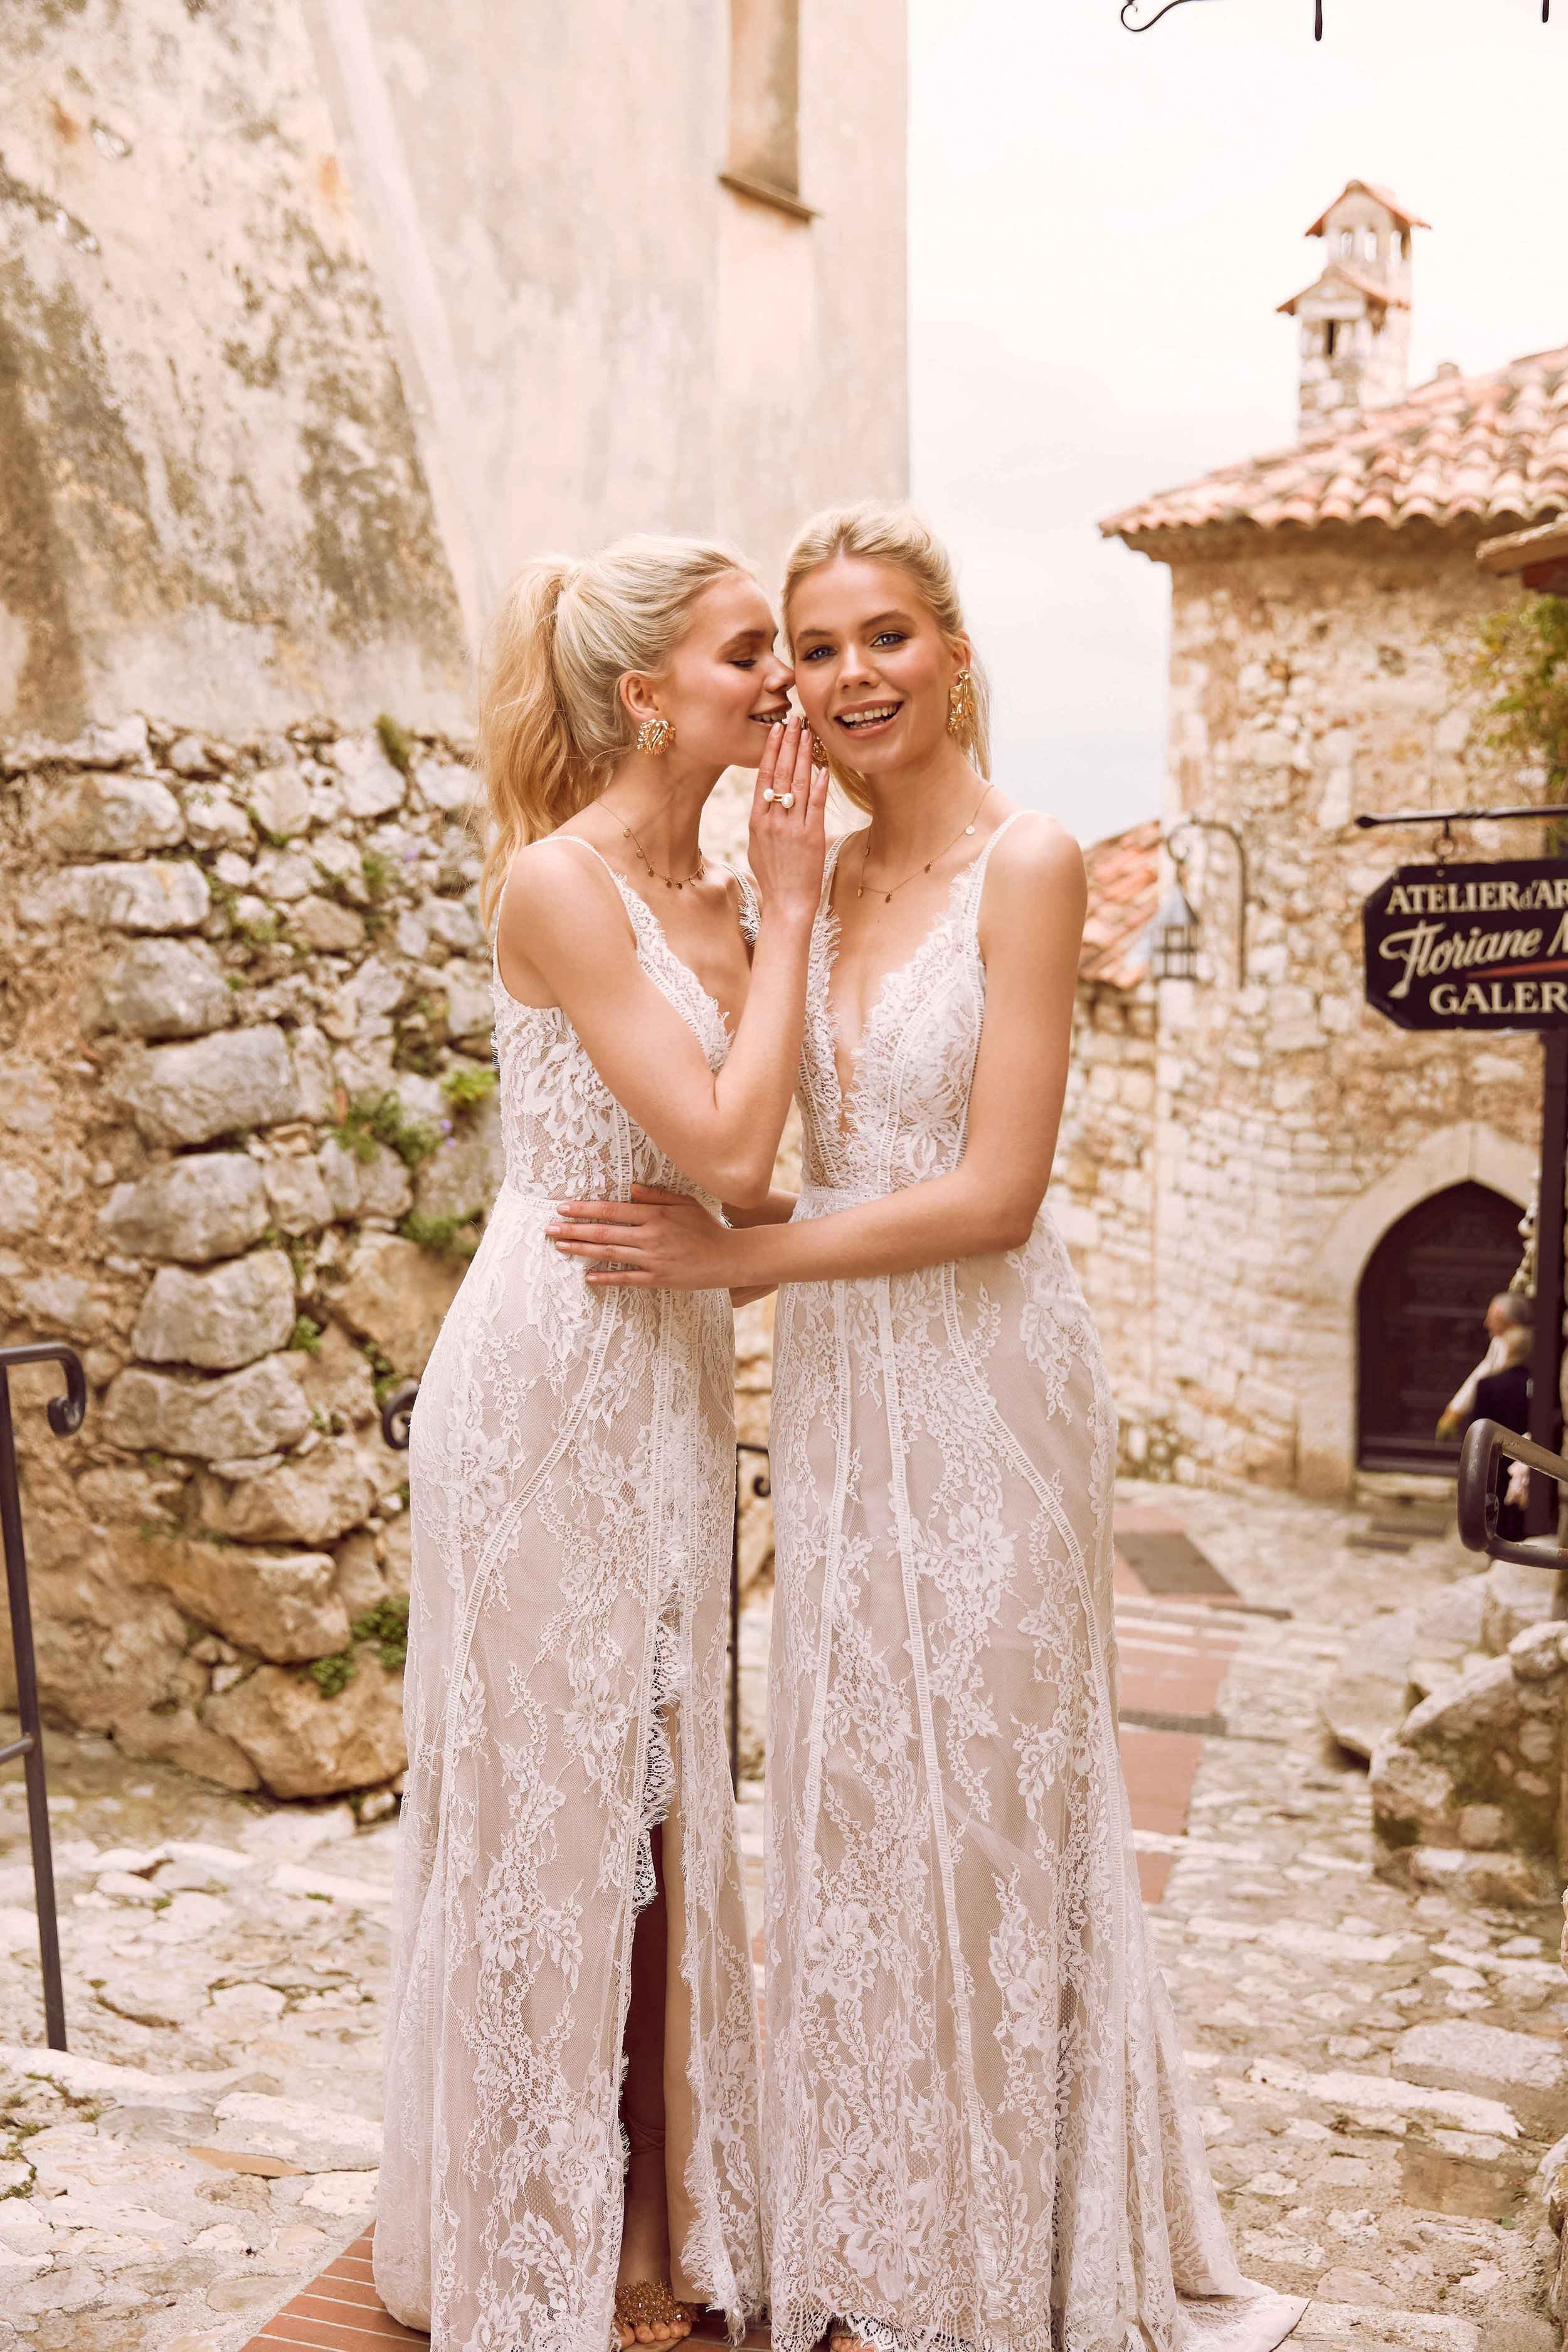 RIVIERA-CAMPAIGN-FOR-MADI-LANE-BRIDAL-SHOT-IN-SOUTH-OF-FRANCE1.jpg